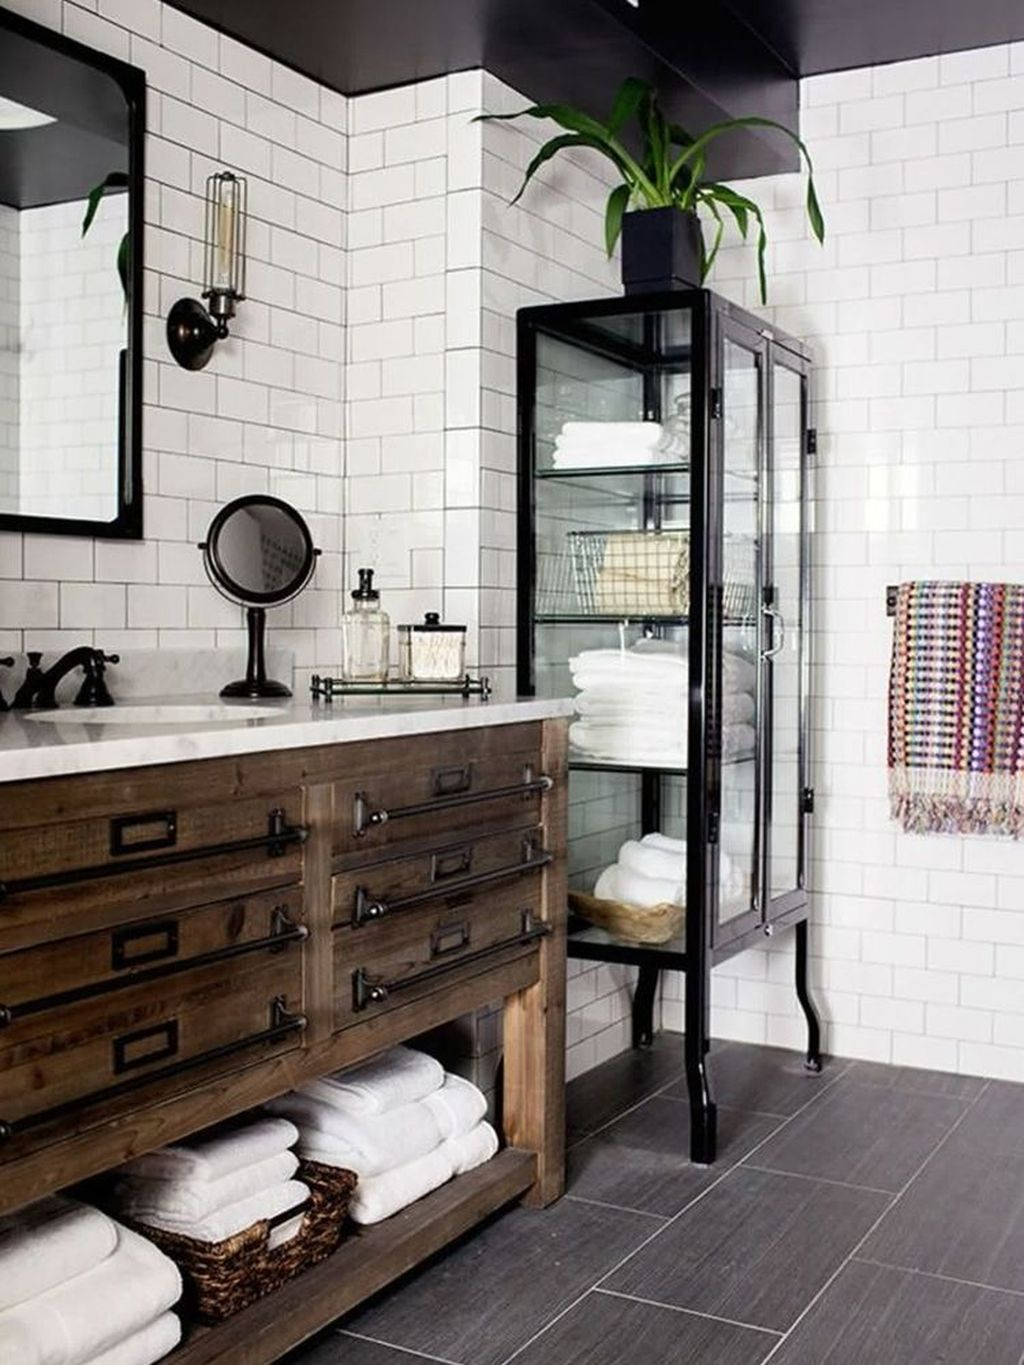 Stunning Industrial Bathroom Design Ideas 19